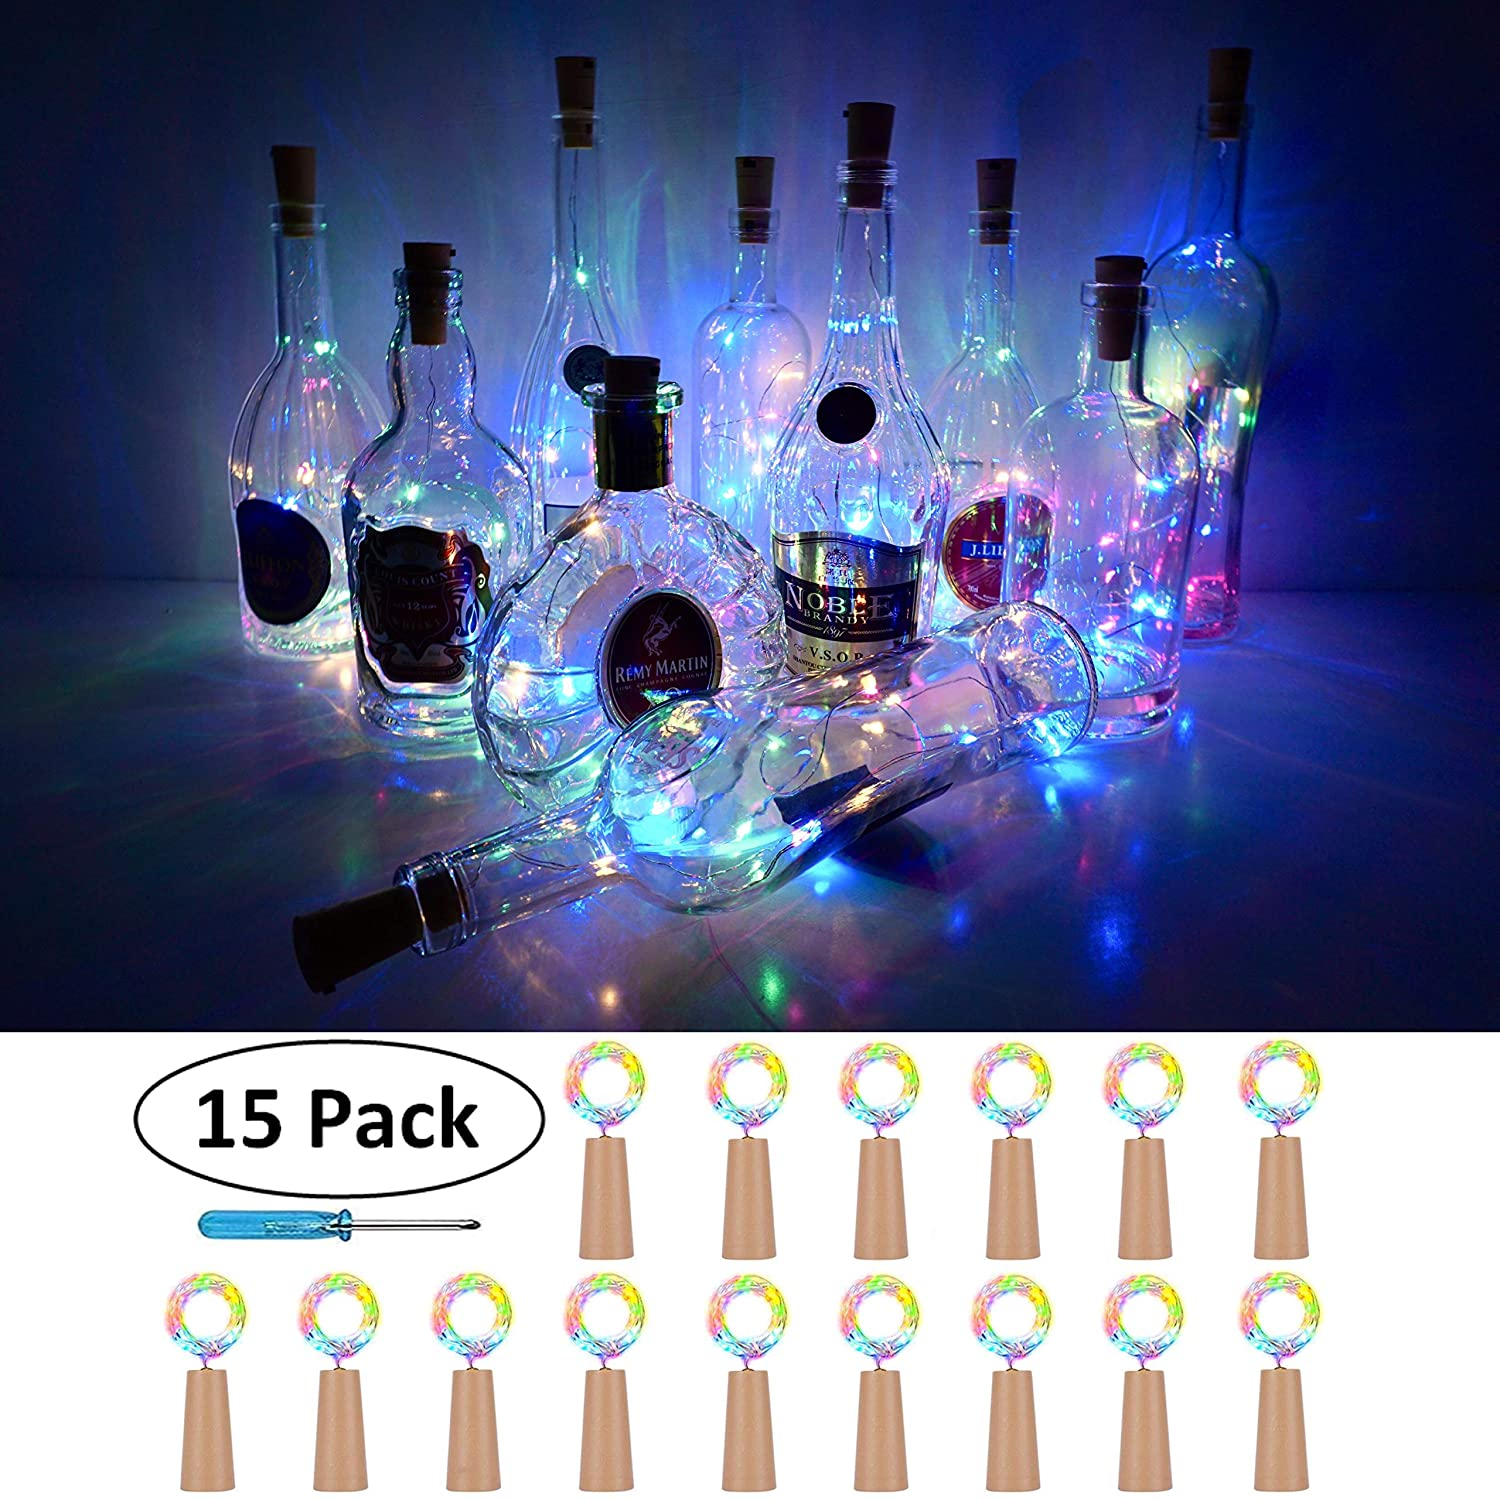 Wine Bottle Cork Lights, 15Pack 10 LED/ 40 Inches Battery Operated Cork Shape Copper Wire Colorful Fairy Mini String Lights for Party Christmas Halloween Wedding,Outdoor Indoor Decoration (Multi-Pink)